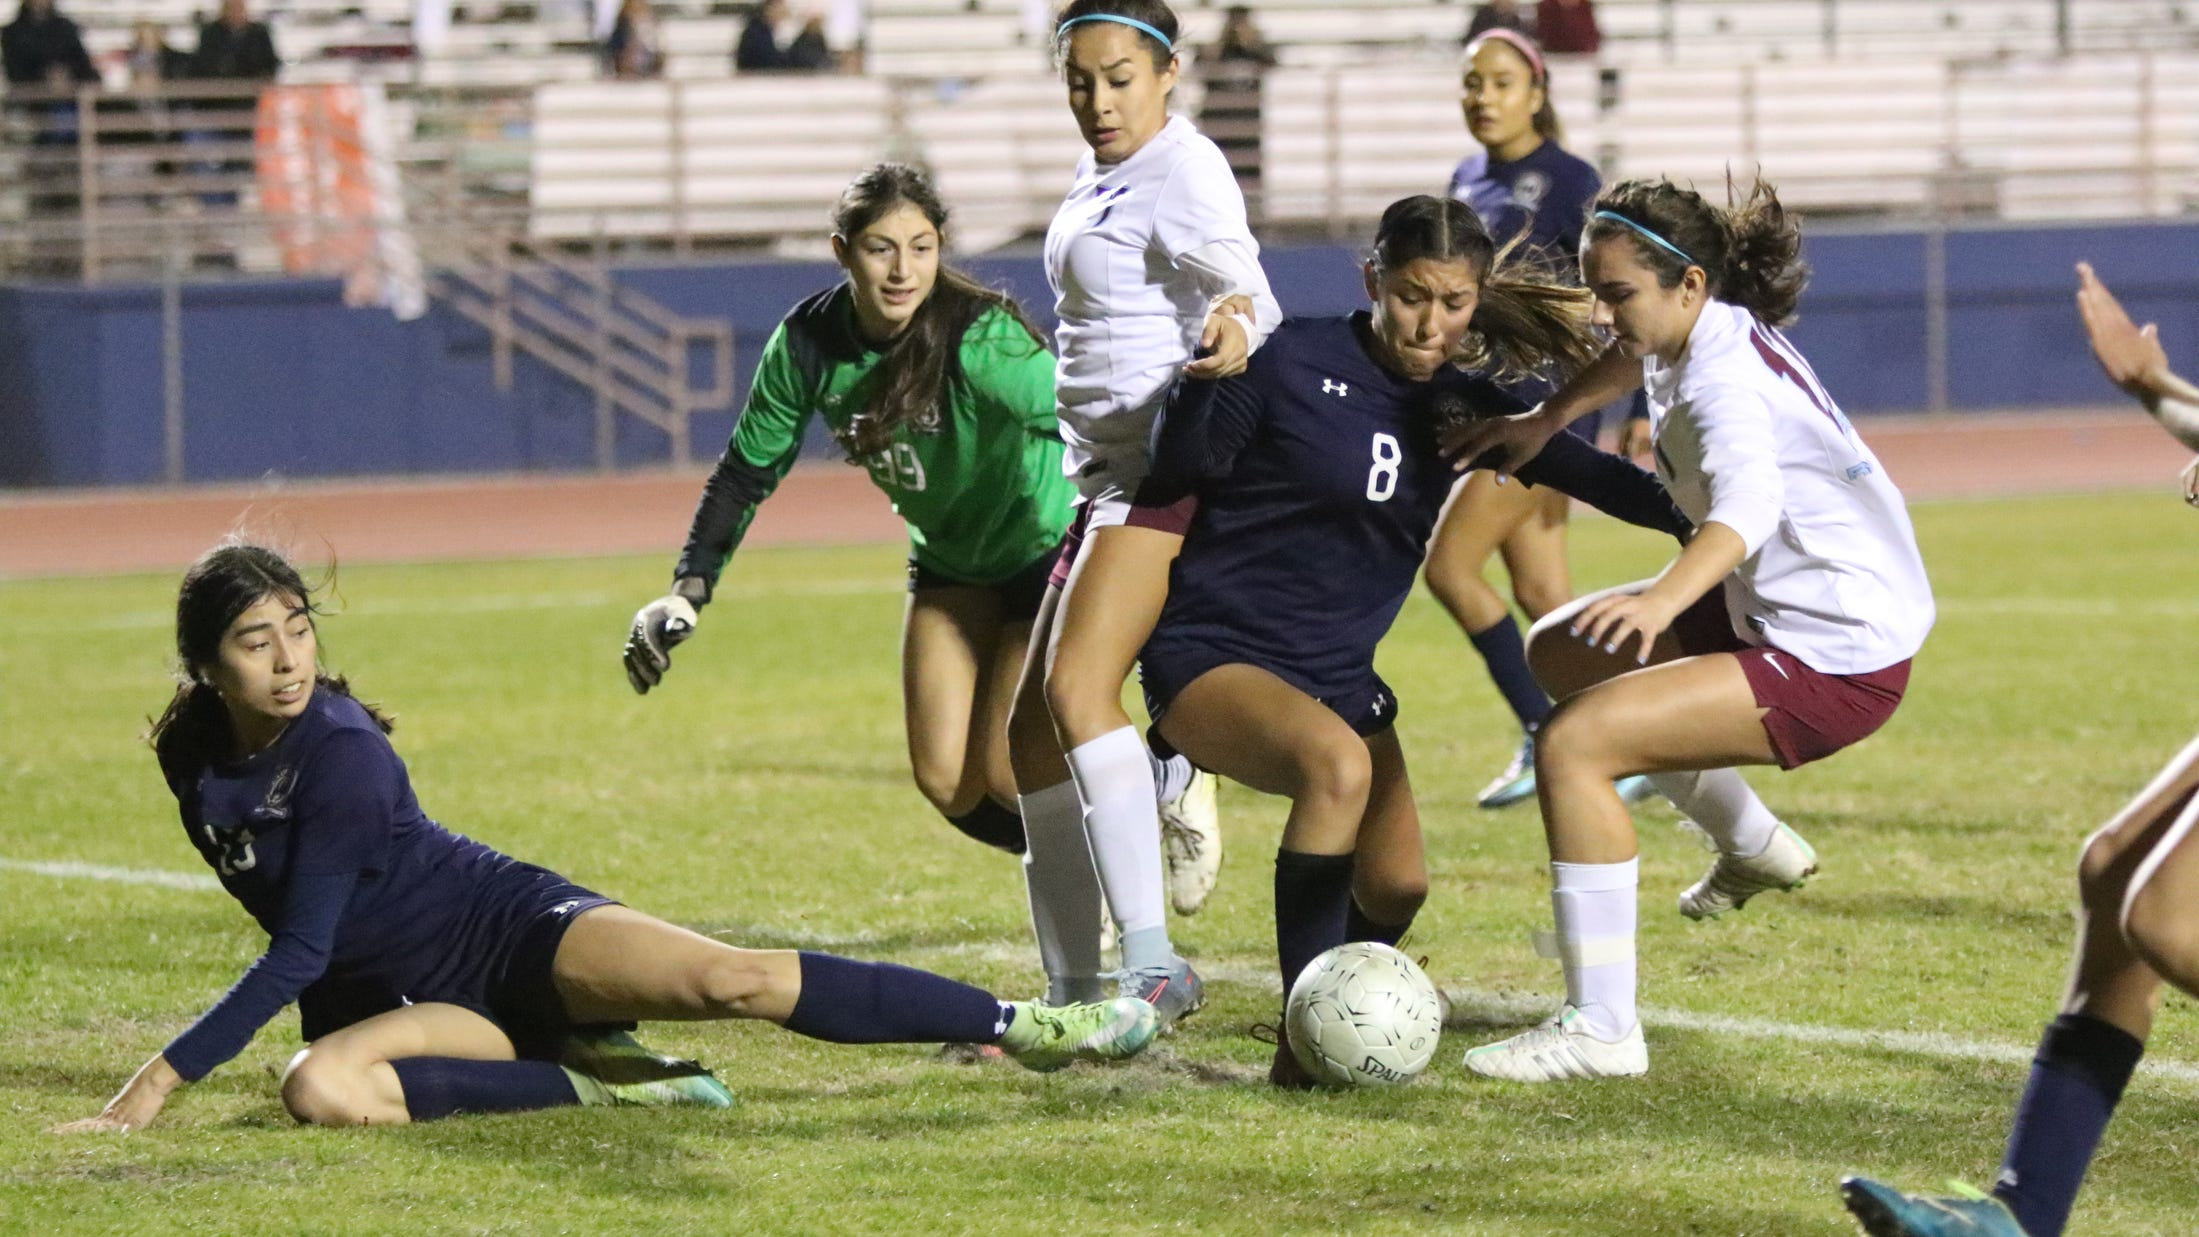 La Quinta's girls' soccer team records first win in quest for another league title